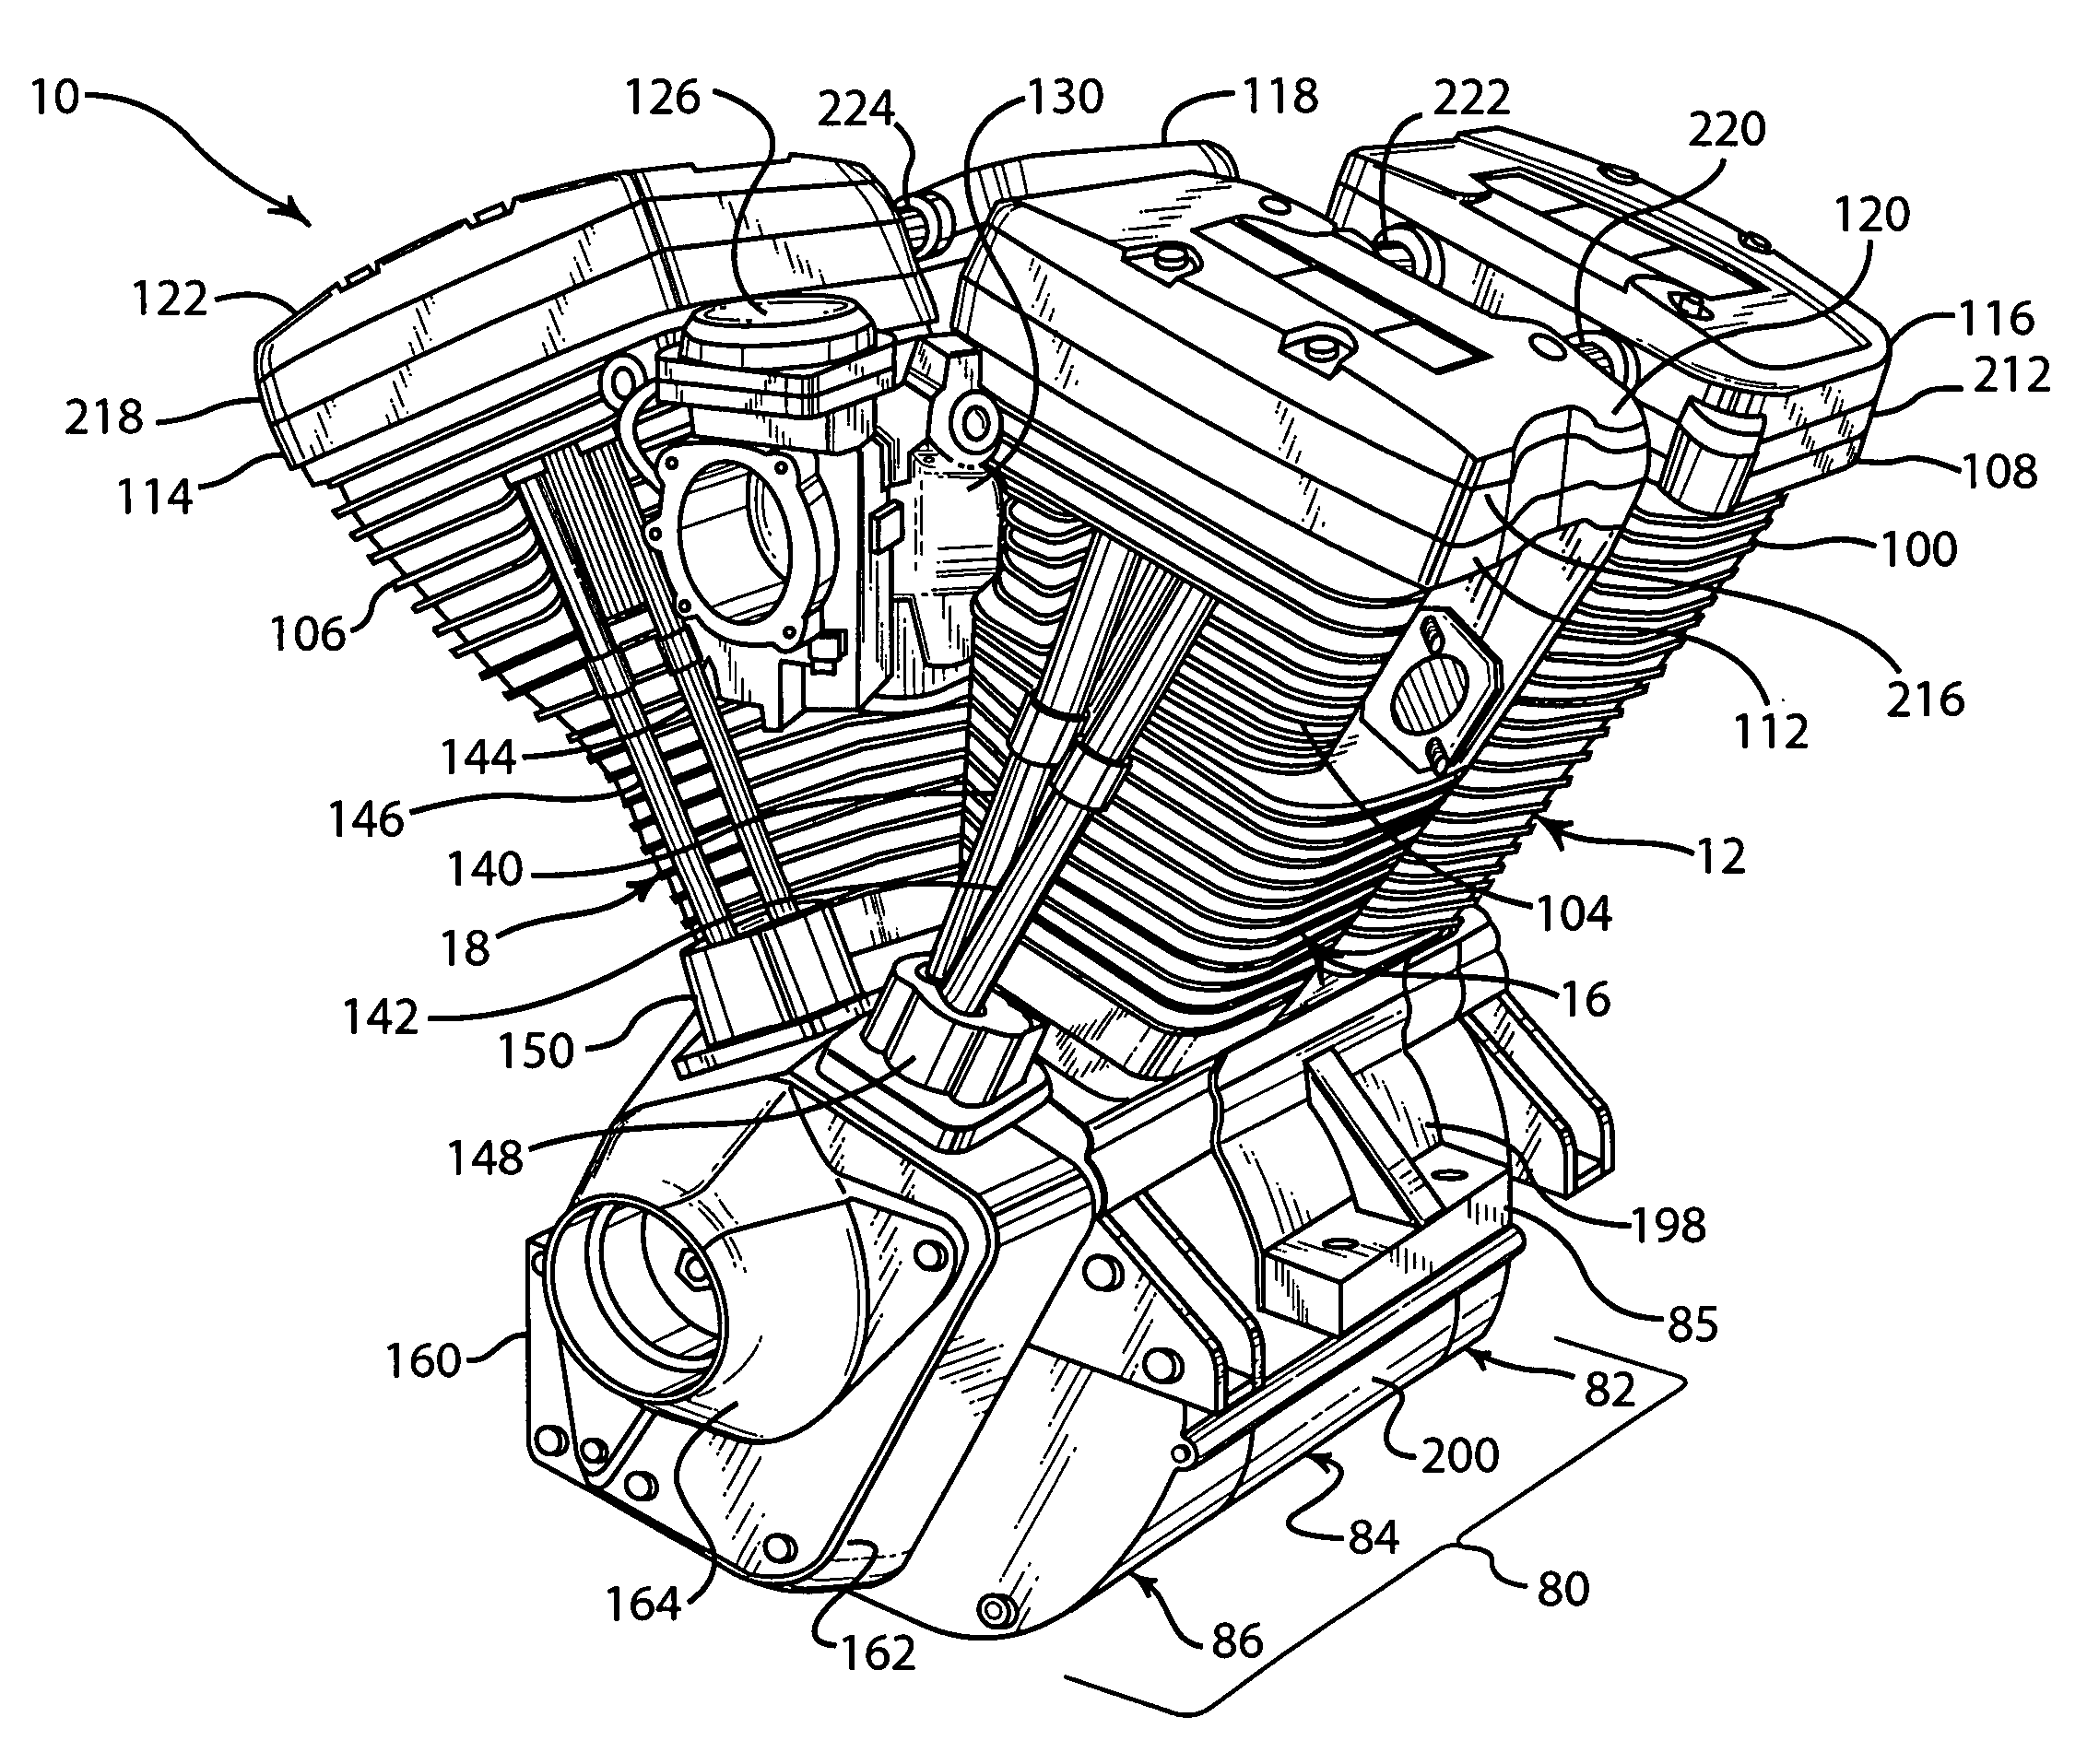 How To Draw Shadow Diagrams Software Uml Harley Davidson Engine Png Transparent Google Search